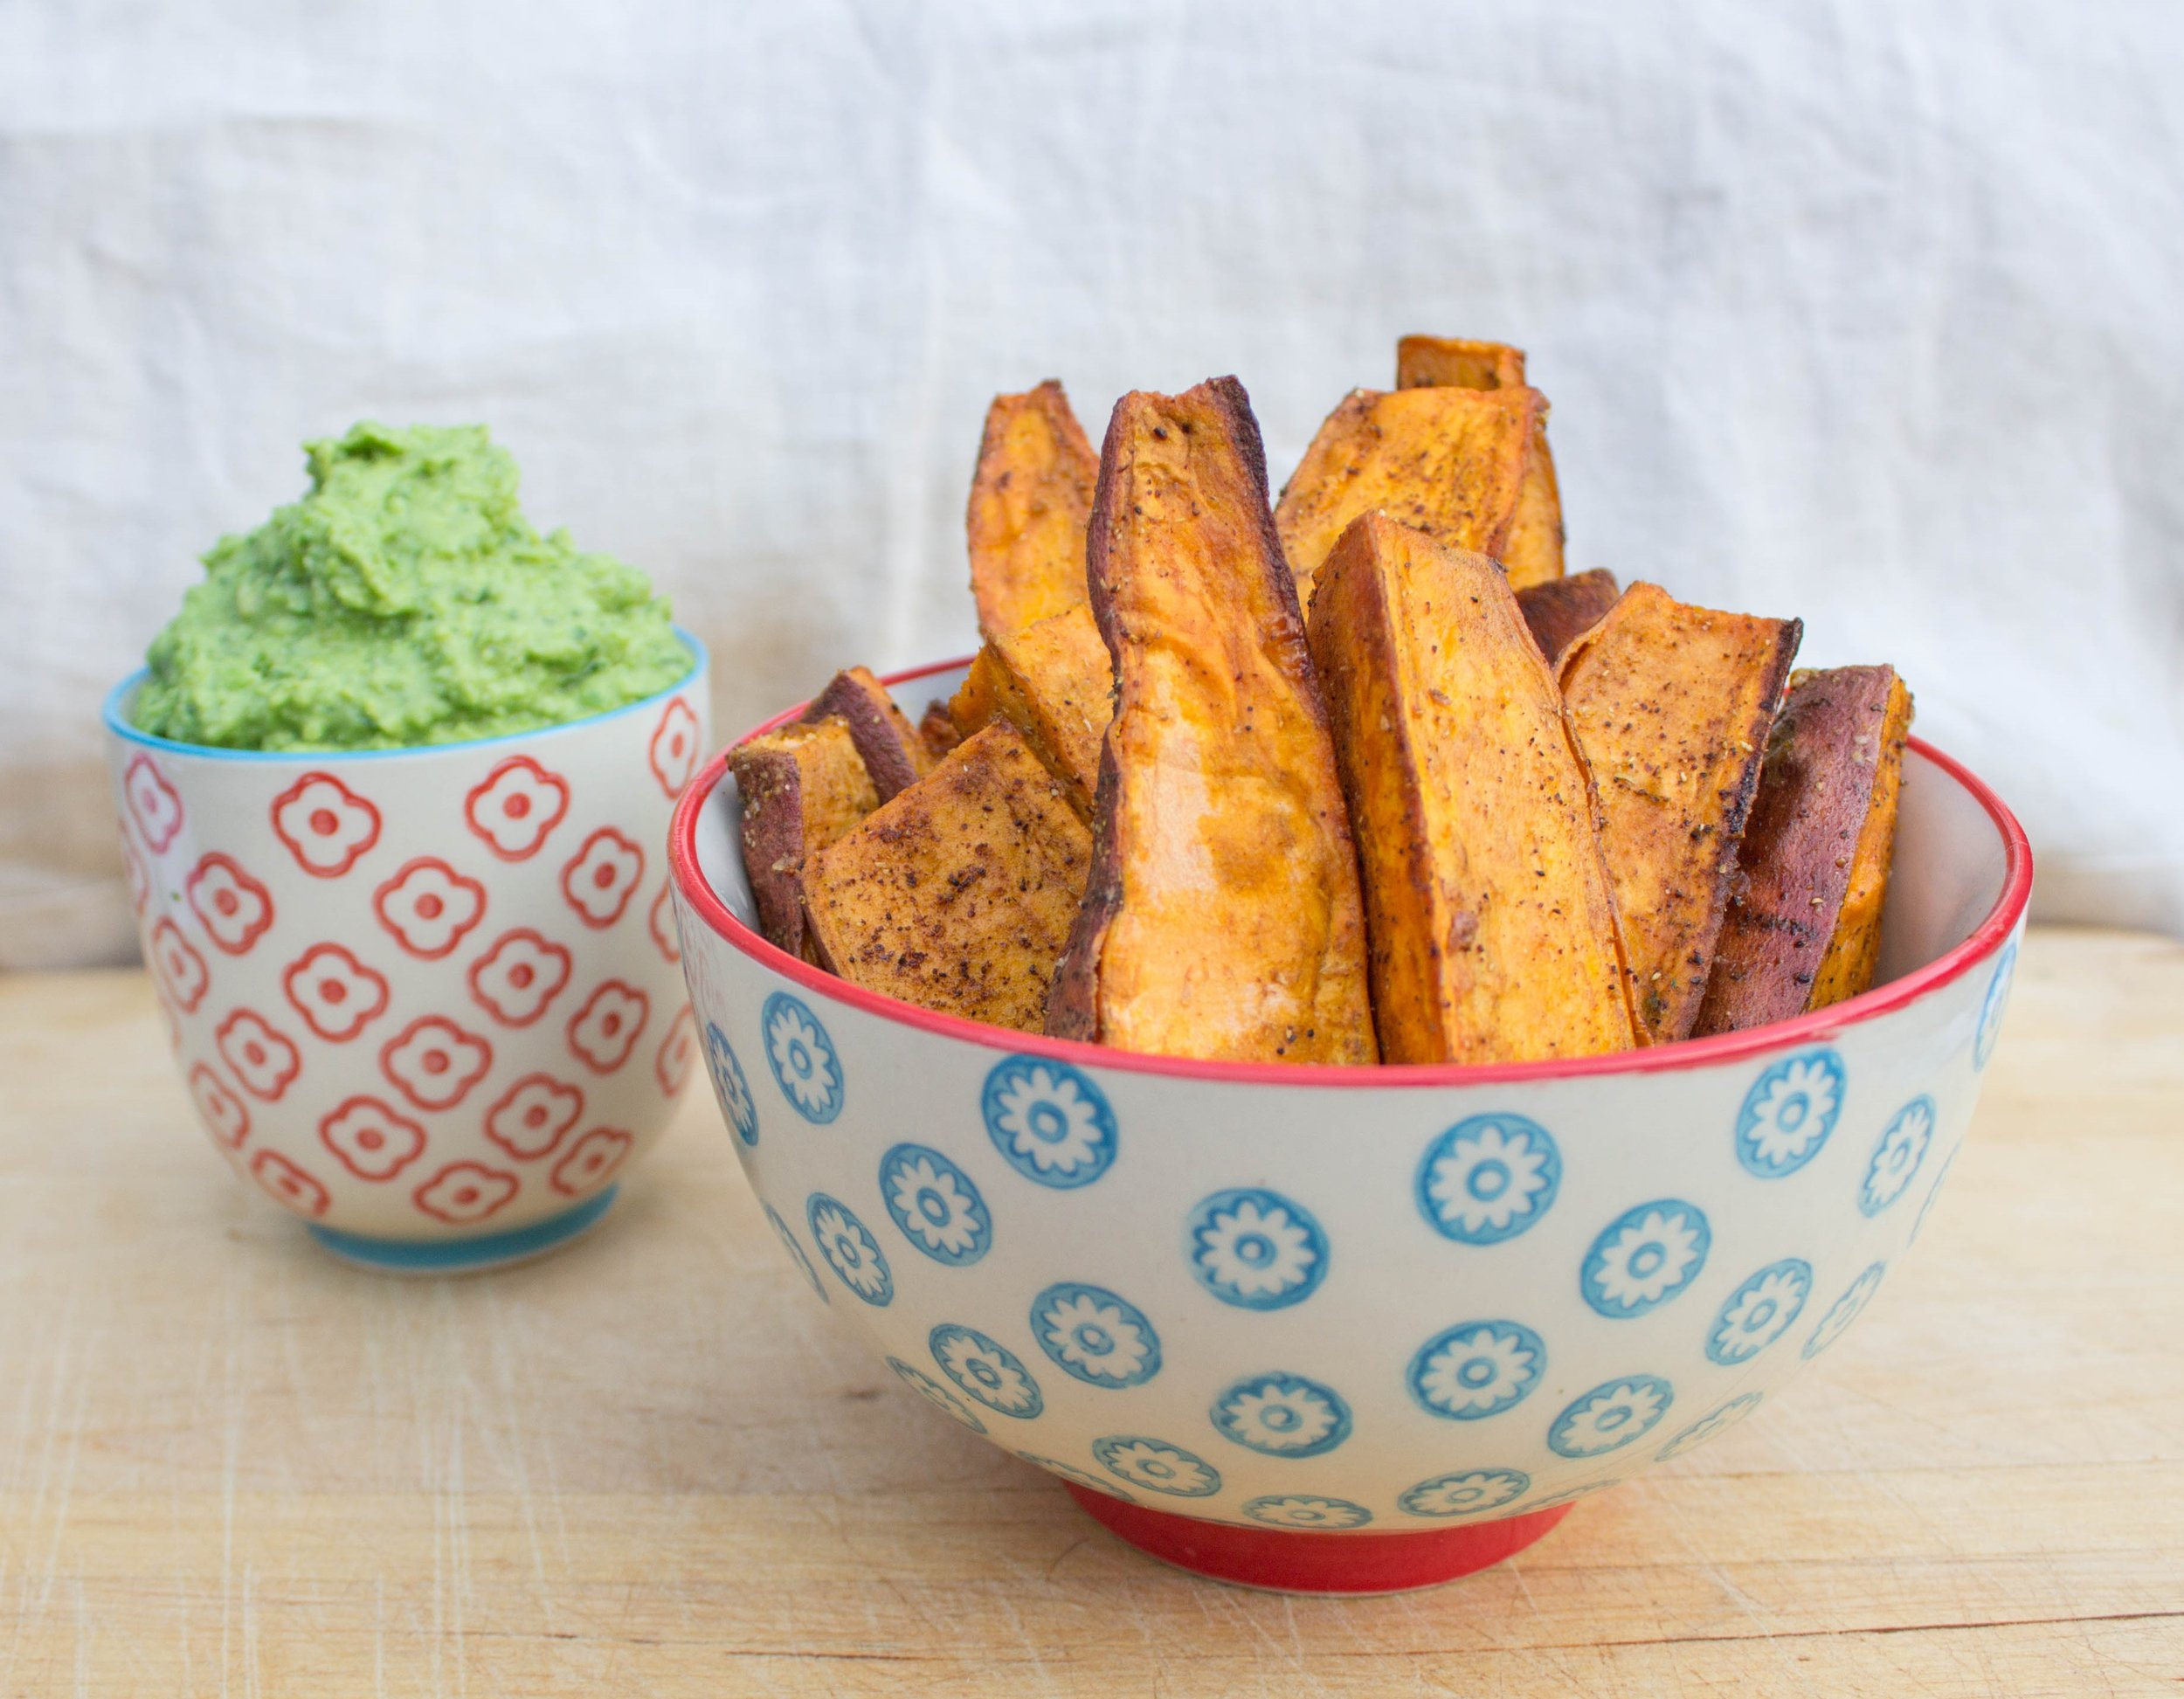 Baked-Sweet-Potato-Wedges-Summer-Pea-Dip-6.jpg